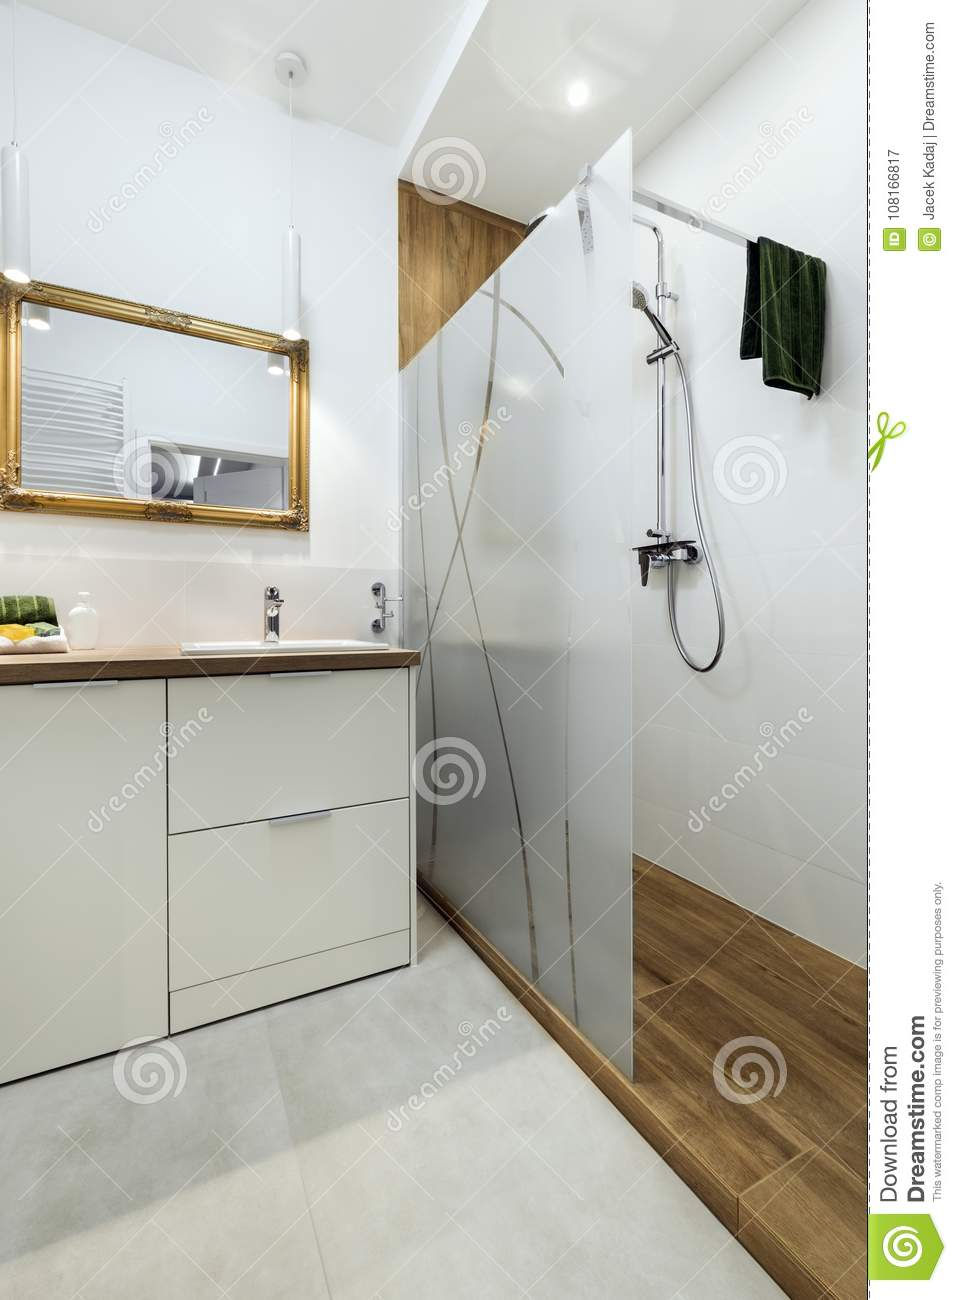 Modern Bathroom With Wooden Floor Stock Image - Image of glass ...